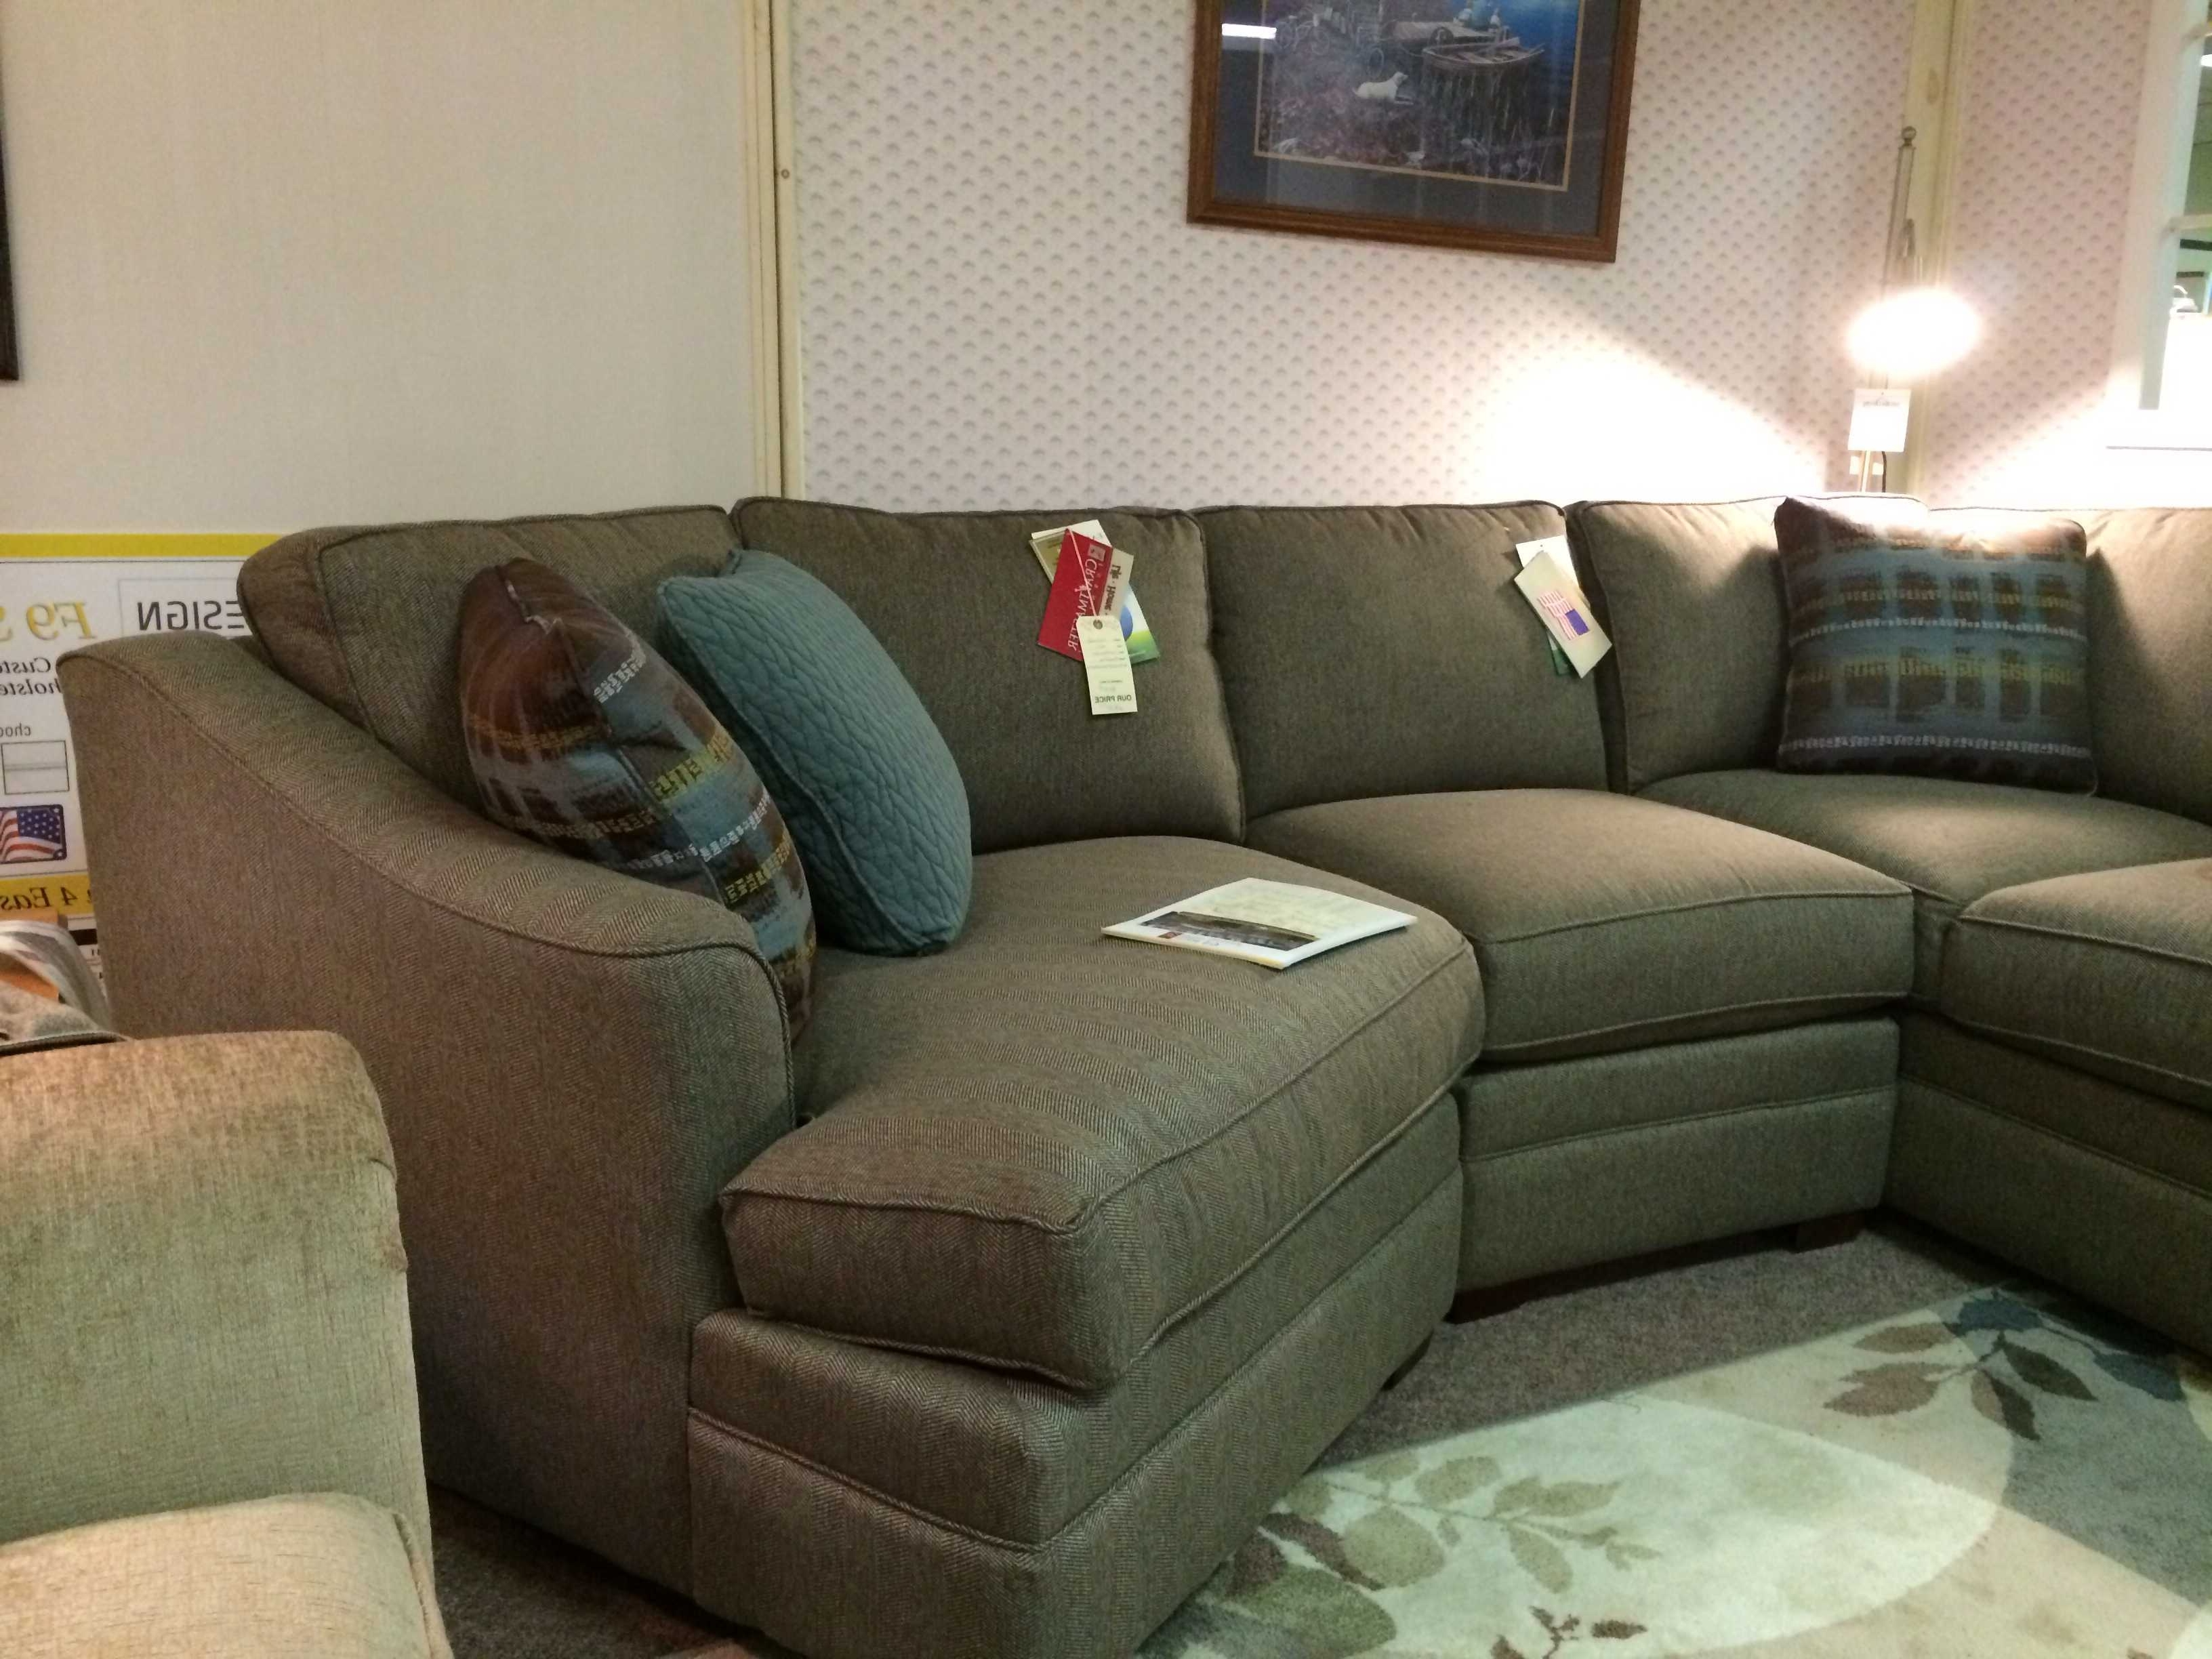 Preferred Awesome Sectional Sofa With Cuddler Chaise Also Ideas ~ Eduquin In Sectional Sofas With Cuddler Chaise (View 9 of 20)